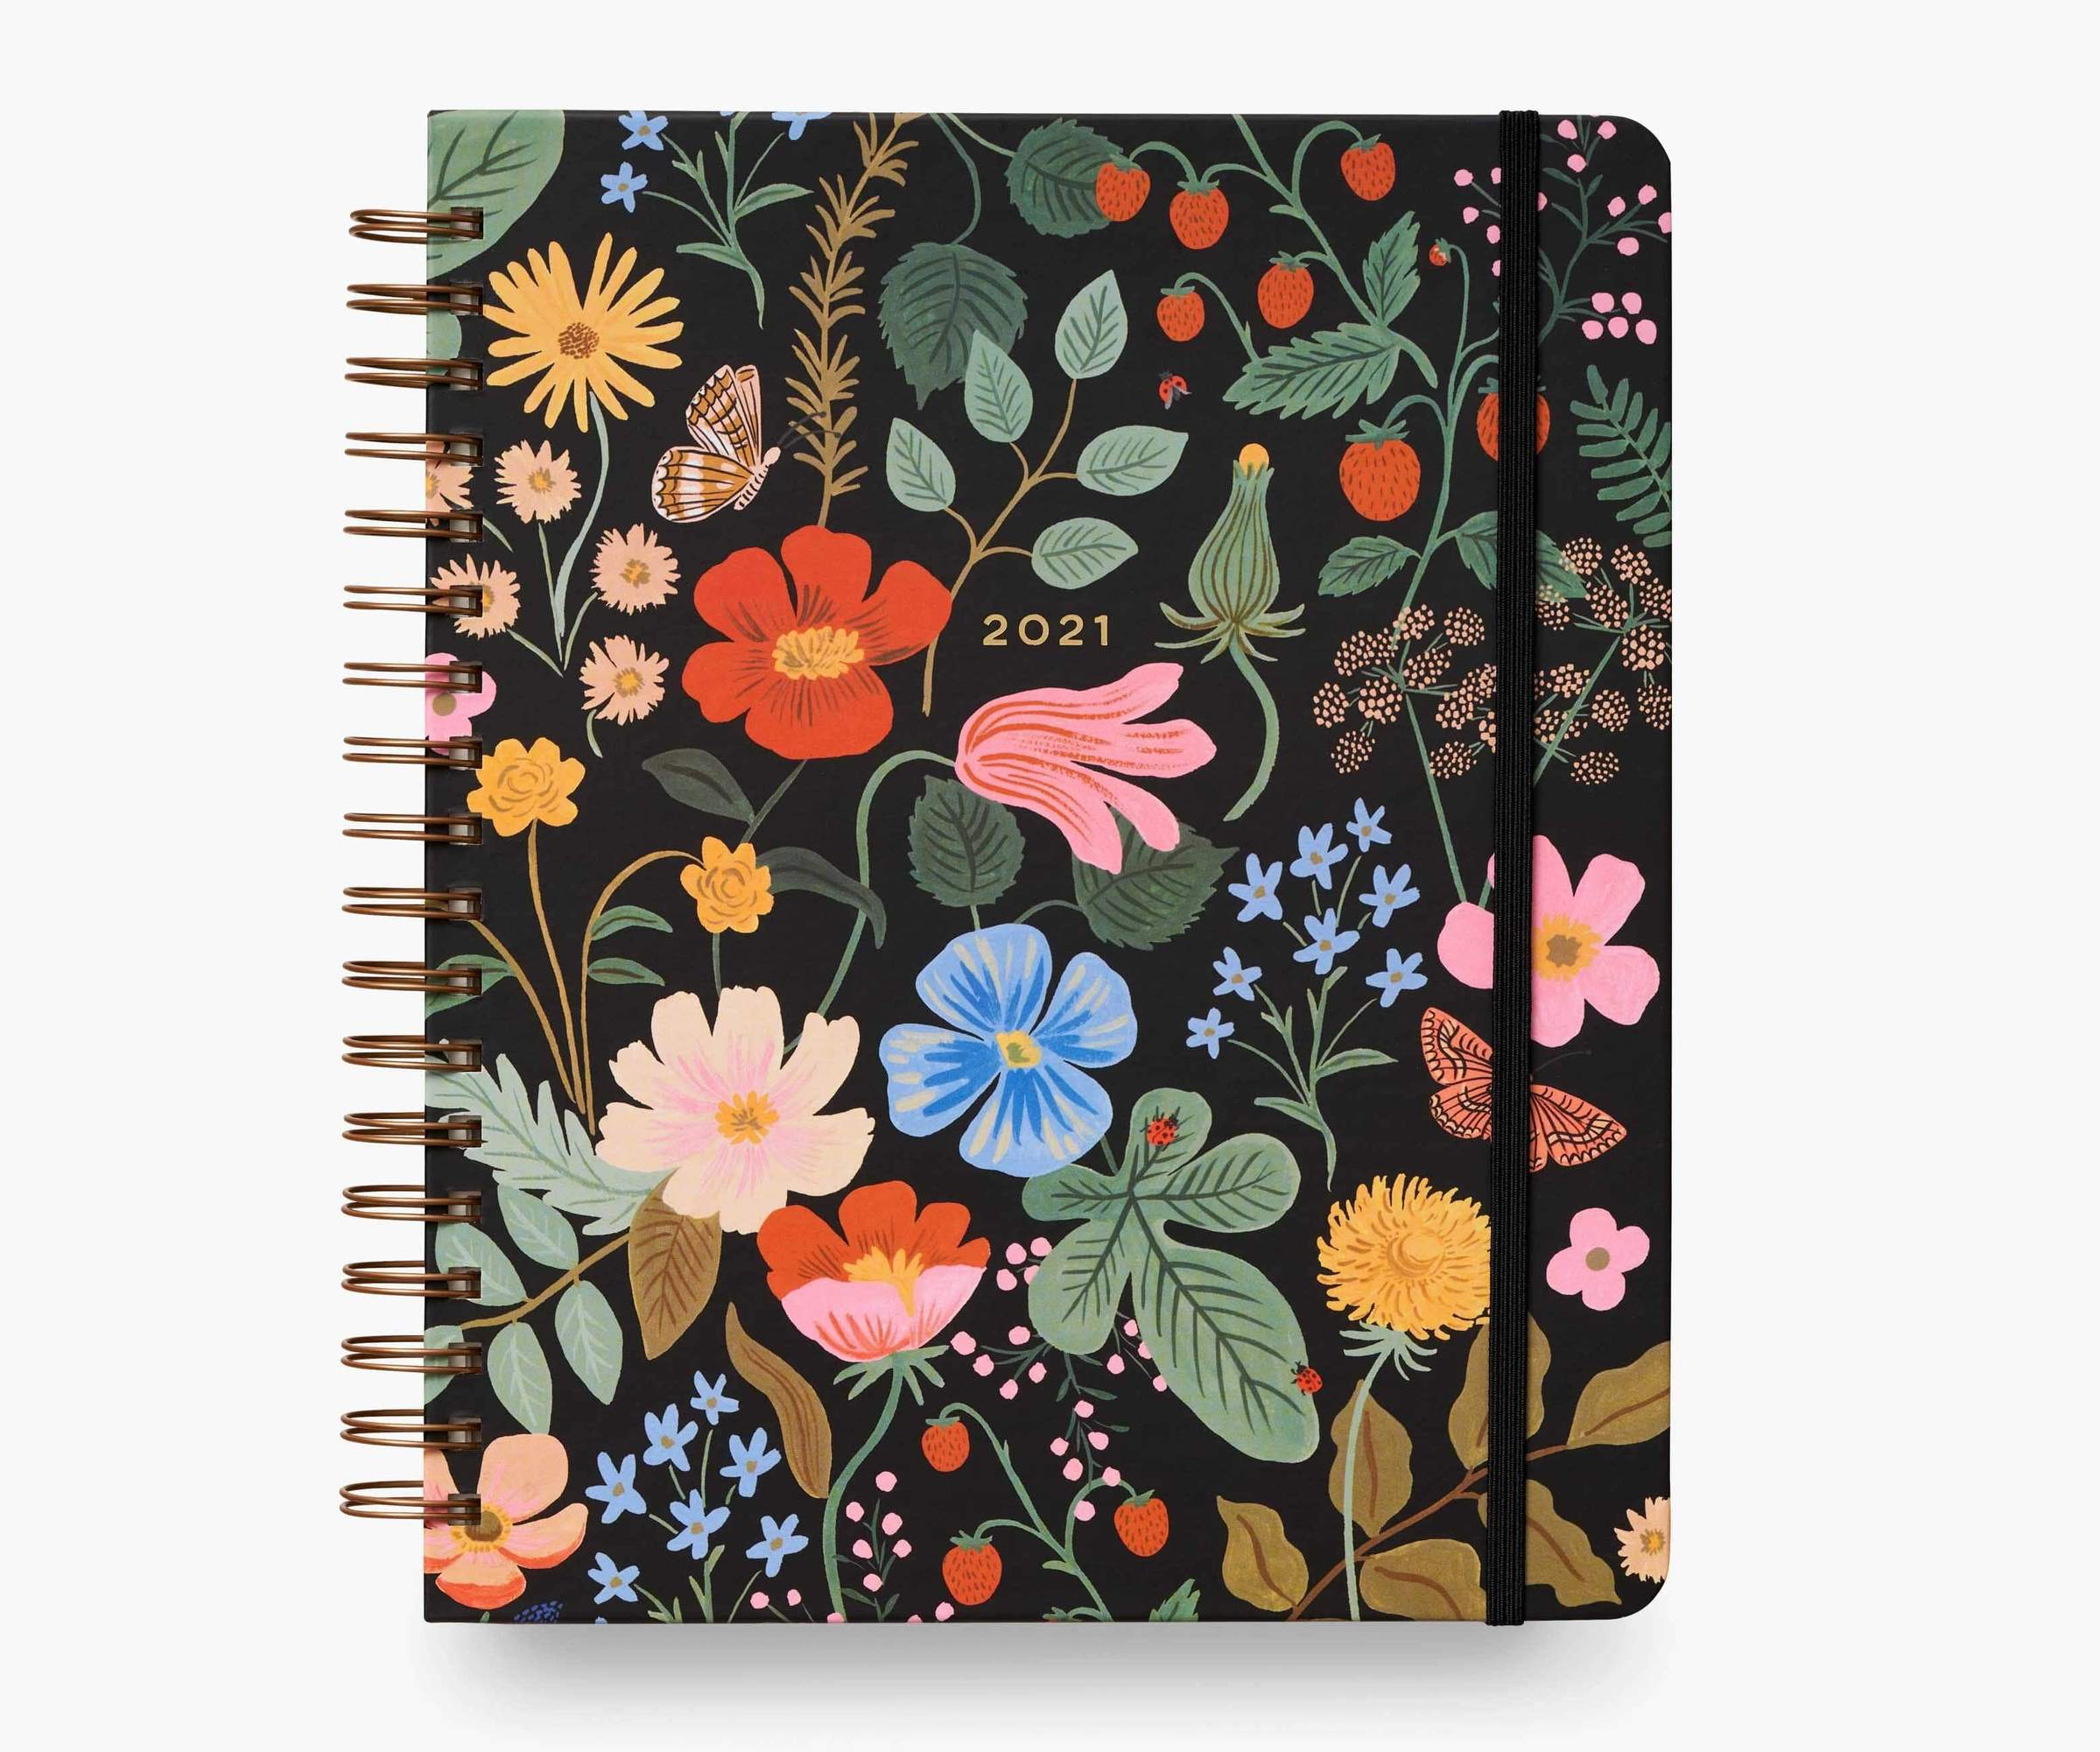 RIFLE - 2021 STRAWBERRY FIELDS SPIRAL 17 month planner